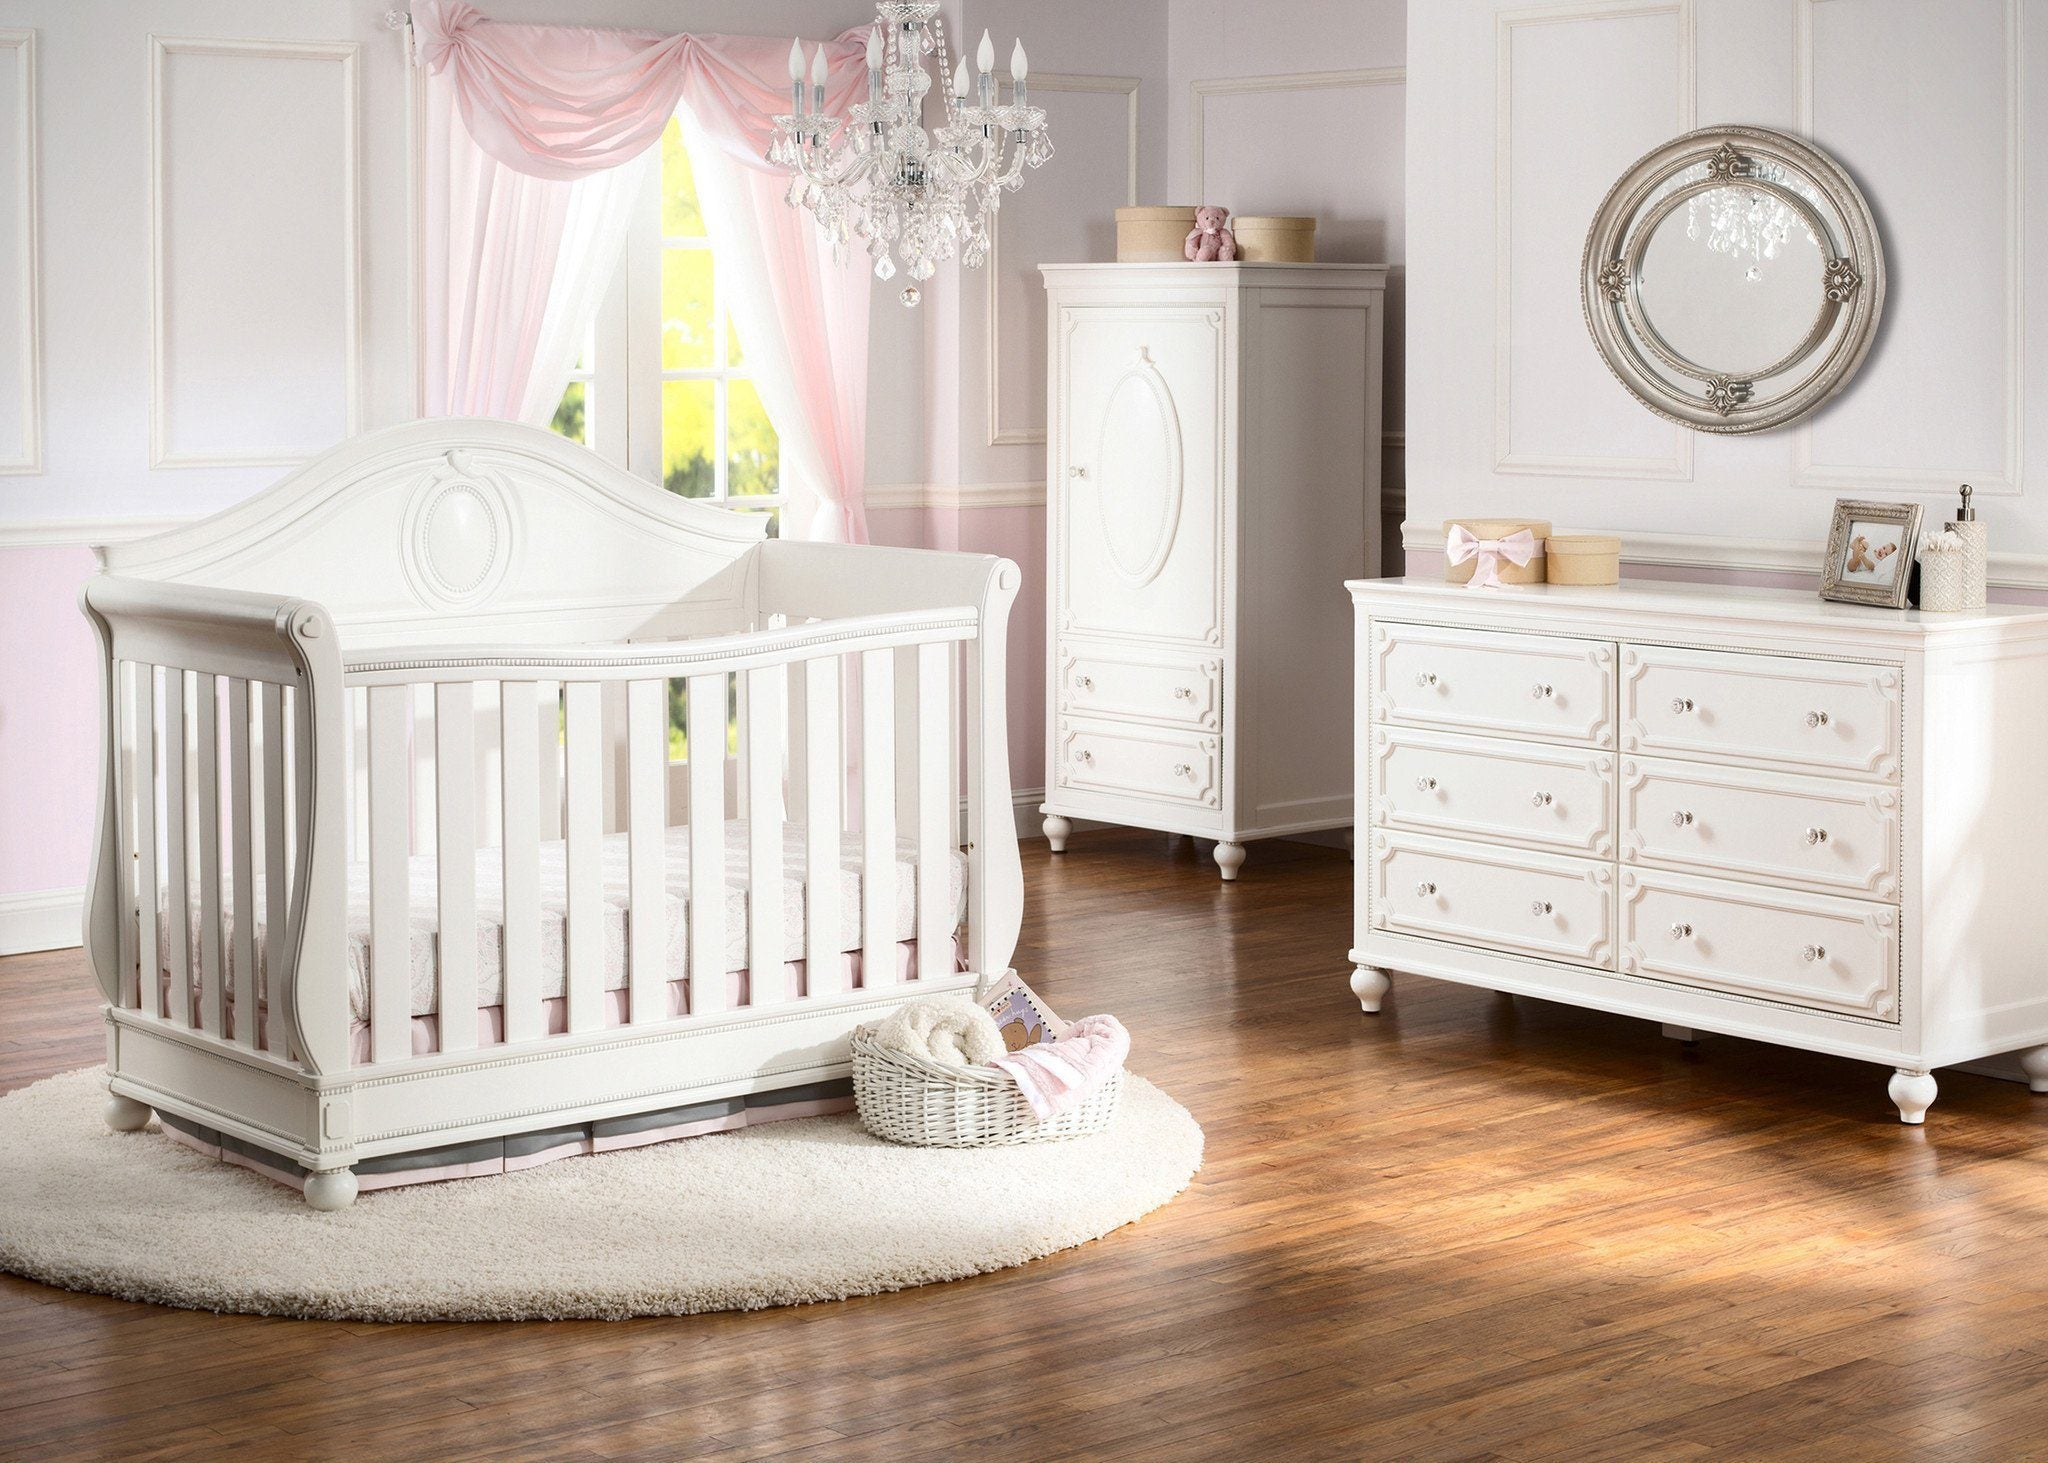 girl baby cribs mg s ideas photo princess then top nursery